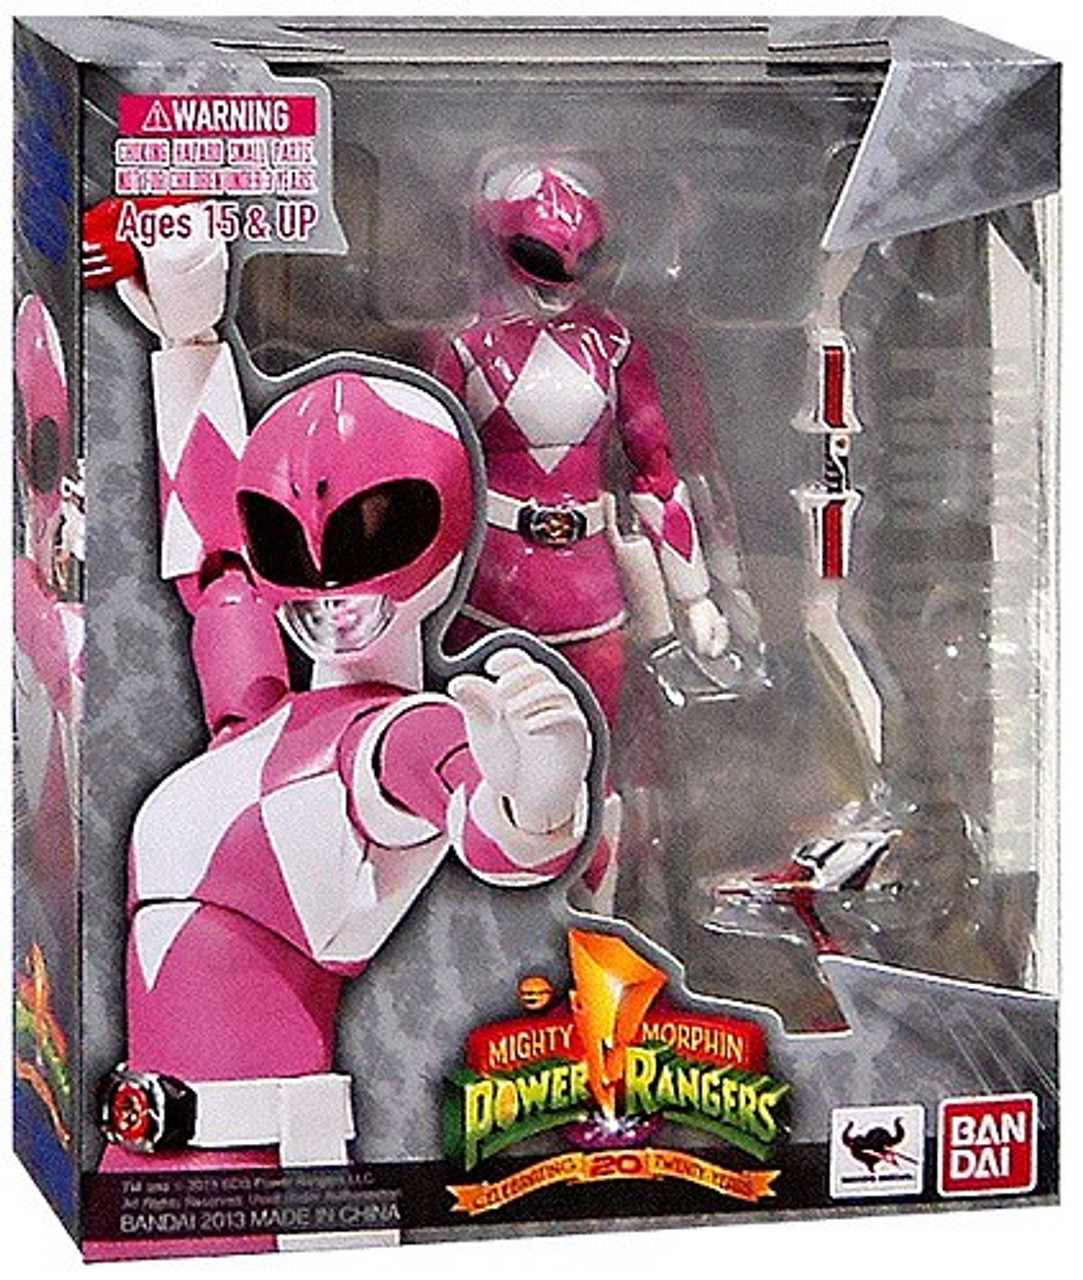 Power Rangers Mighty Morphin S.H. Figuarts Pink Ranger Action Figure